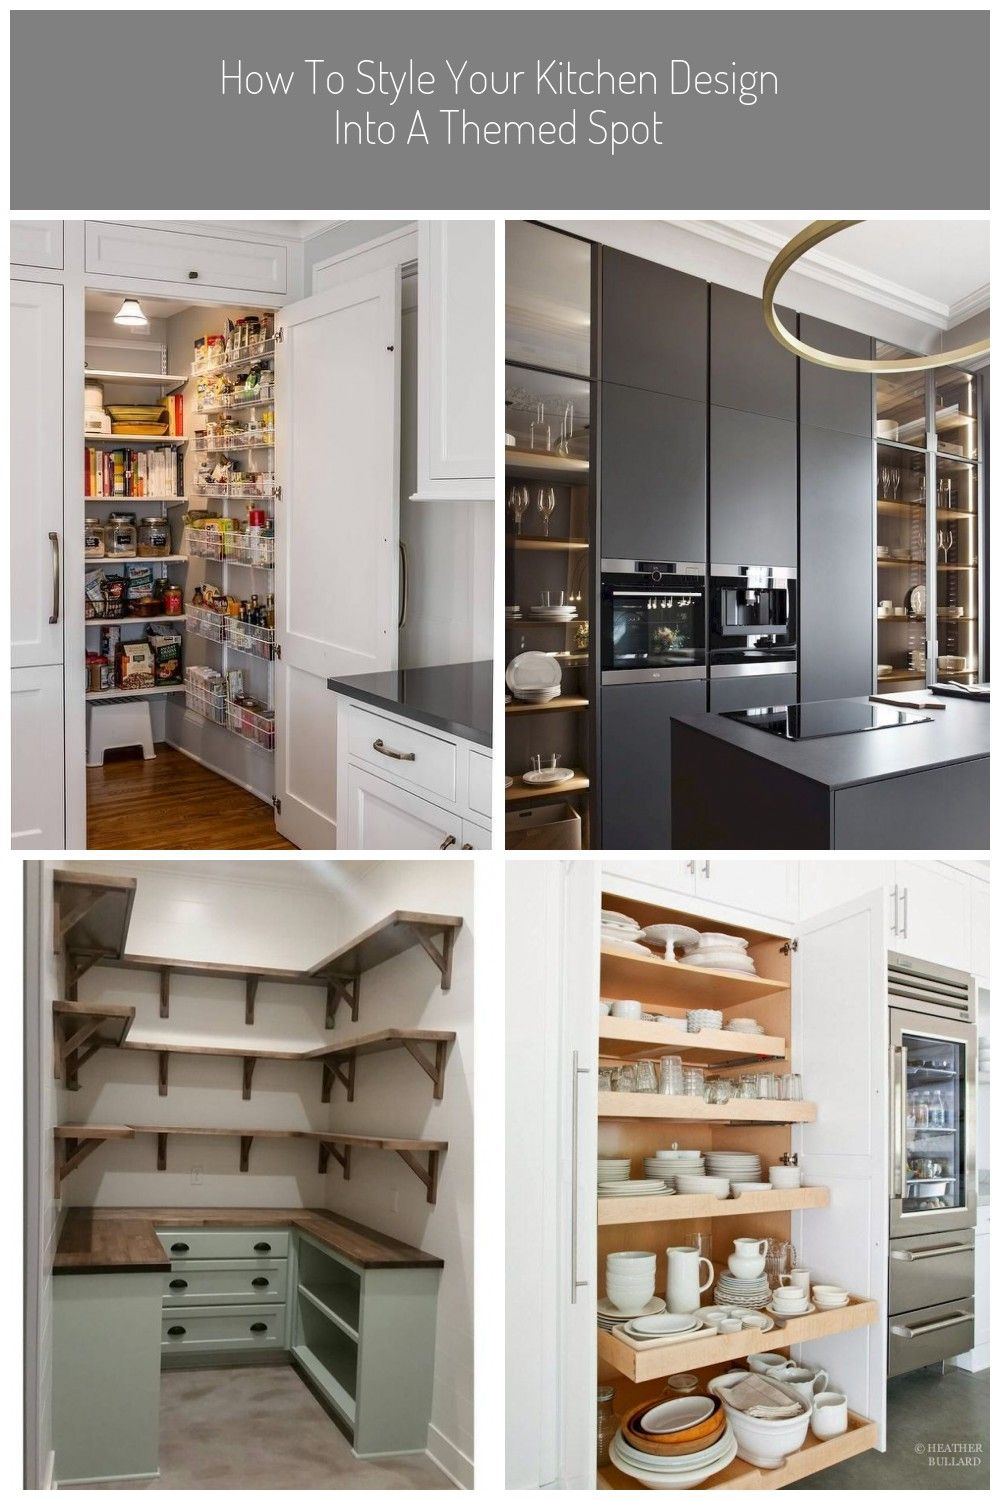 A White Paneled Cabinet Doors Opens To Reveal A Hidden Kitchen Pantry Equipped With Stacked White Metal Spice Baske In 2020 Hidden Kitchen Cabinet Doors Kitchen Pantry